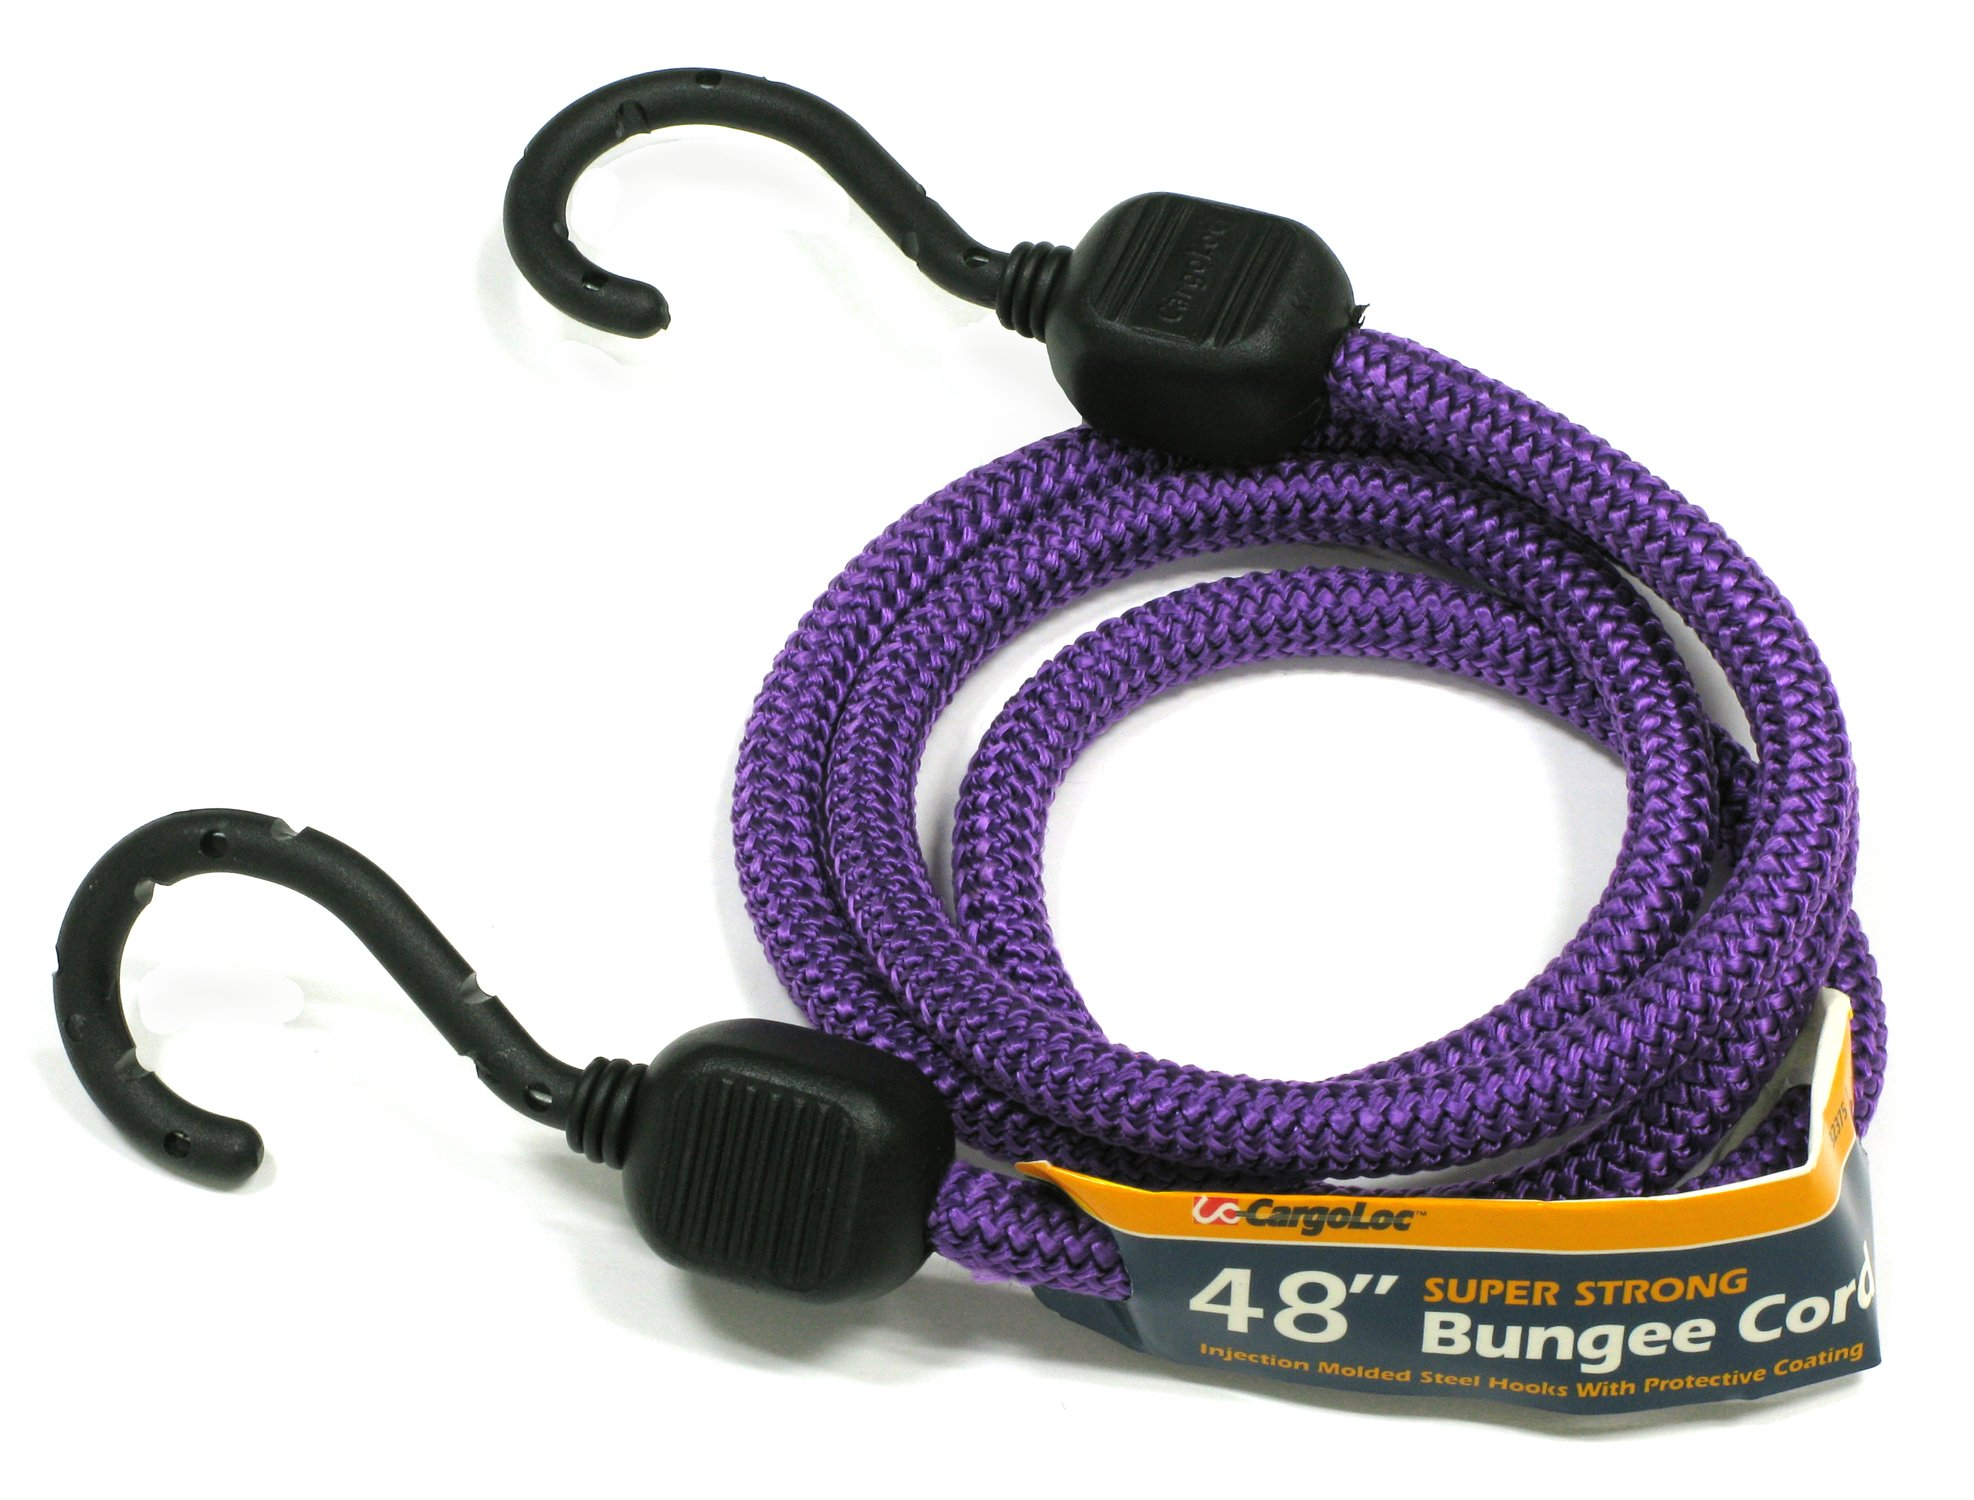 CargoLoc 32375 Bungee Cords with Injection Molded Steel Hooks, 48-Inch, Purple